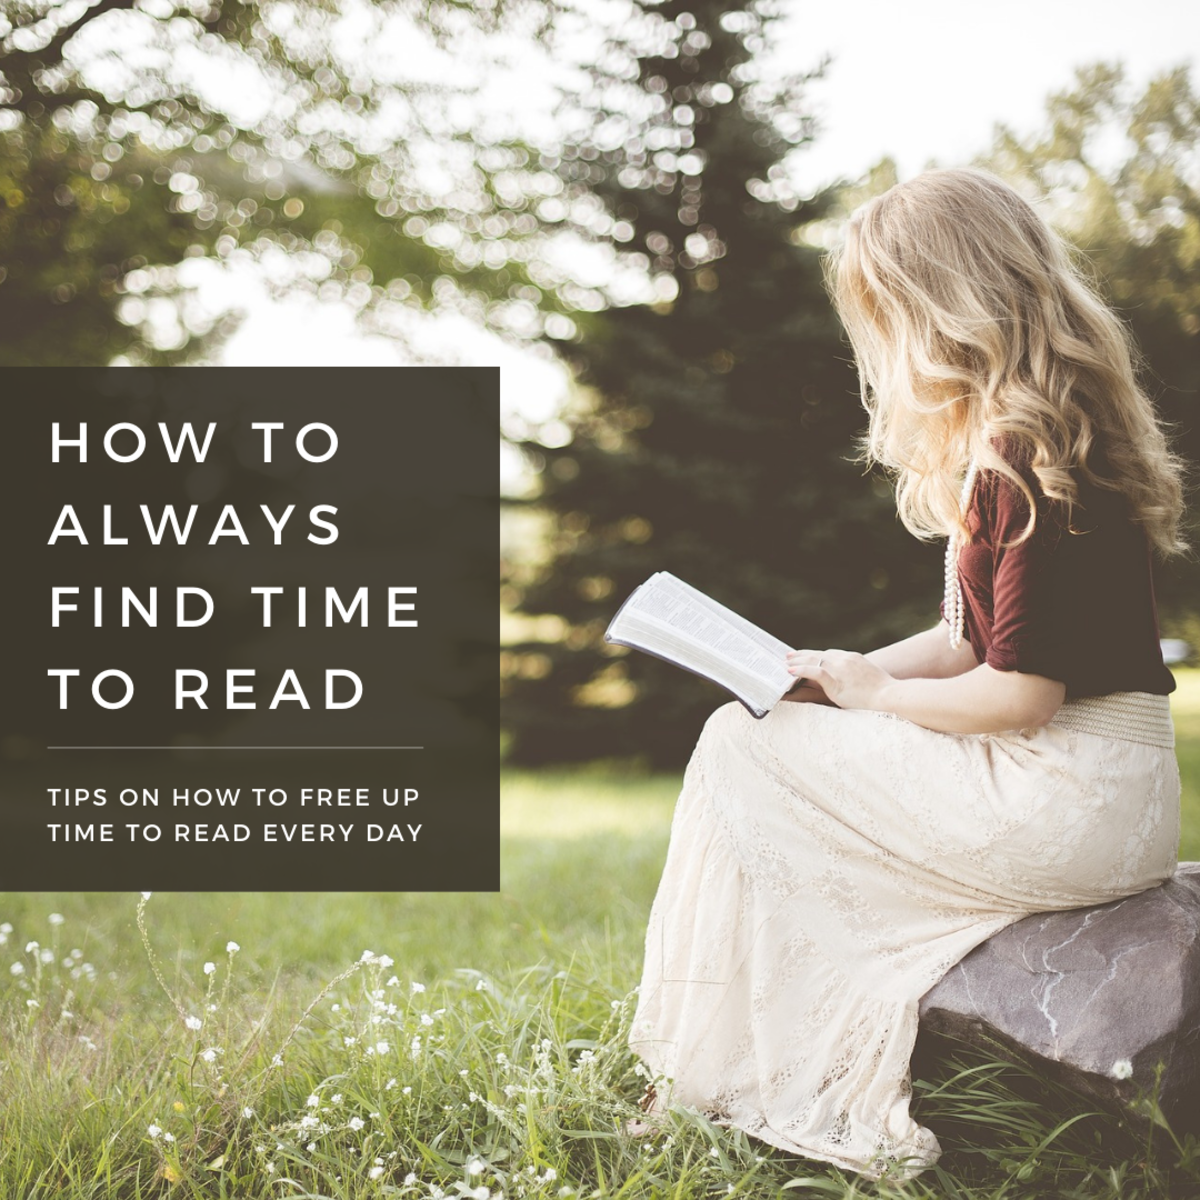 This article will break down some useful tips and habits for ensuring that you always have some time to read every day.